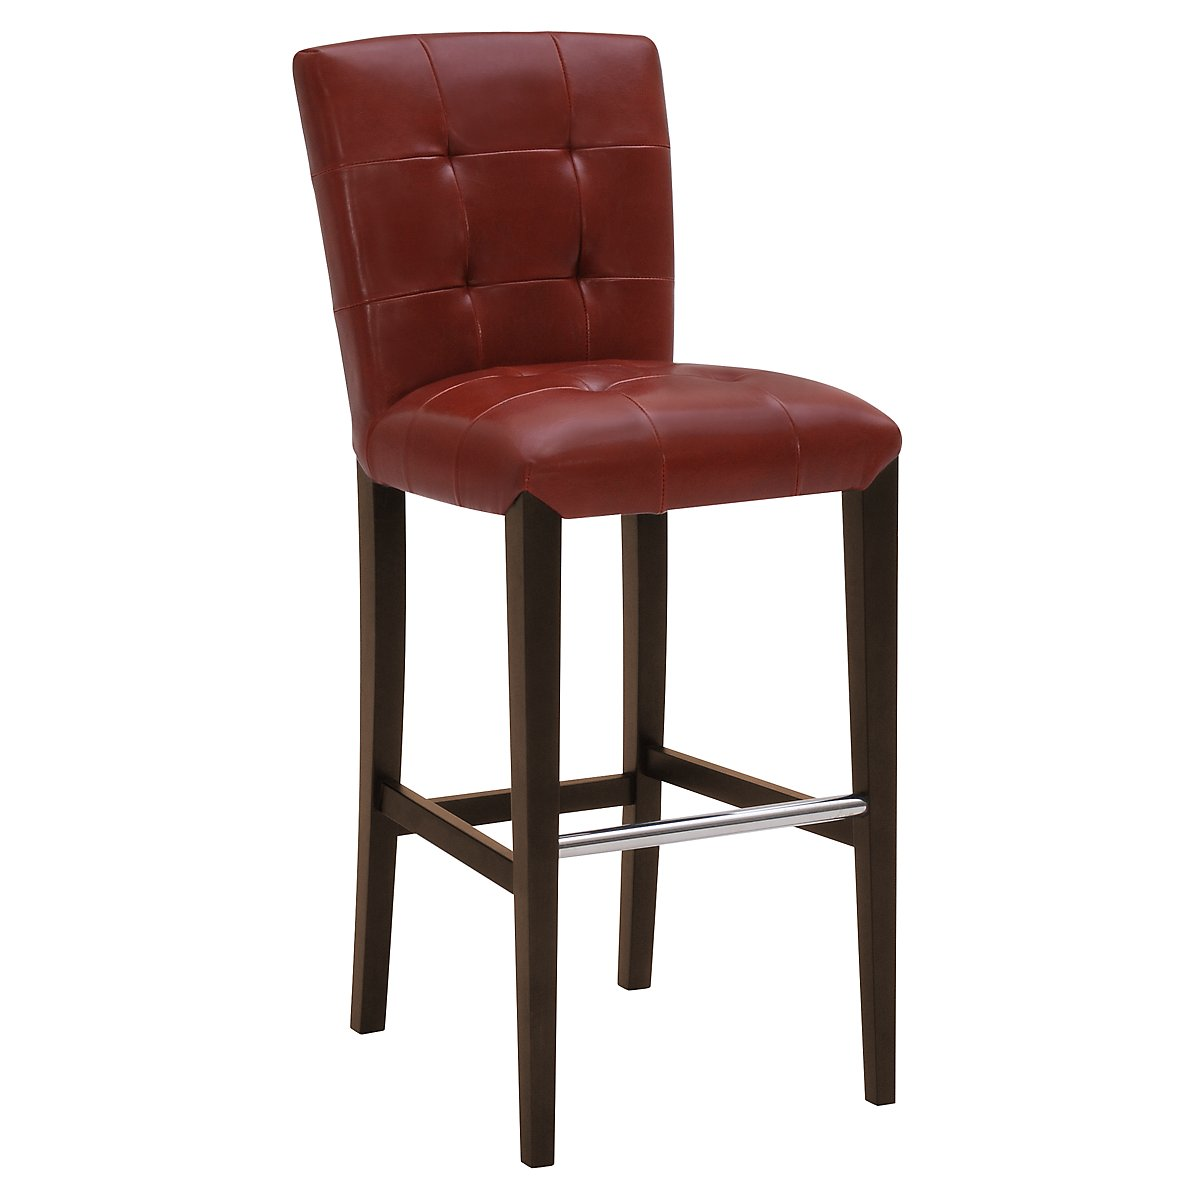 "Trisha Red Bonded Leather 30"" Upholstered Barstool"